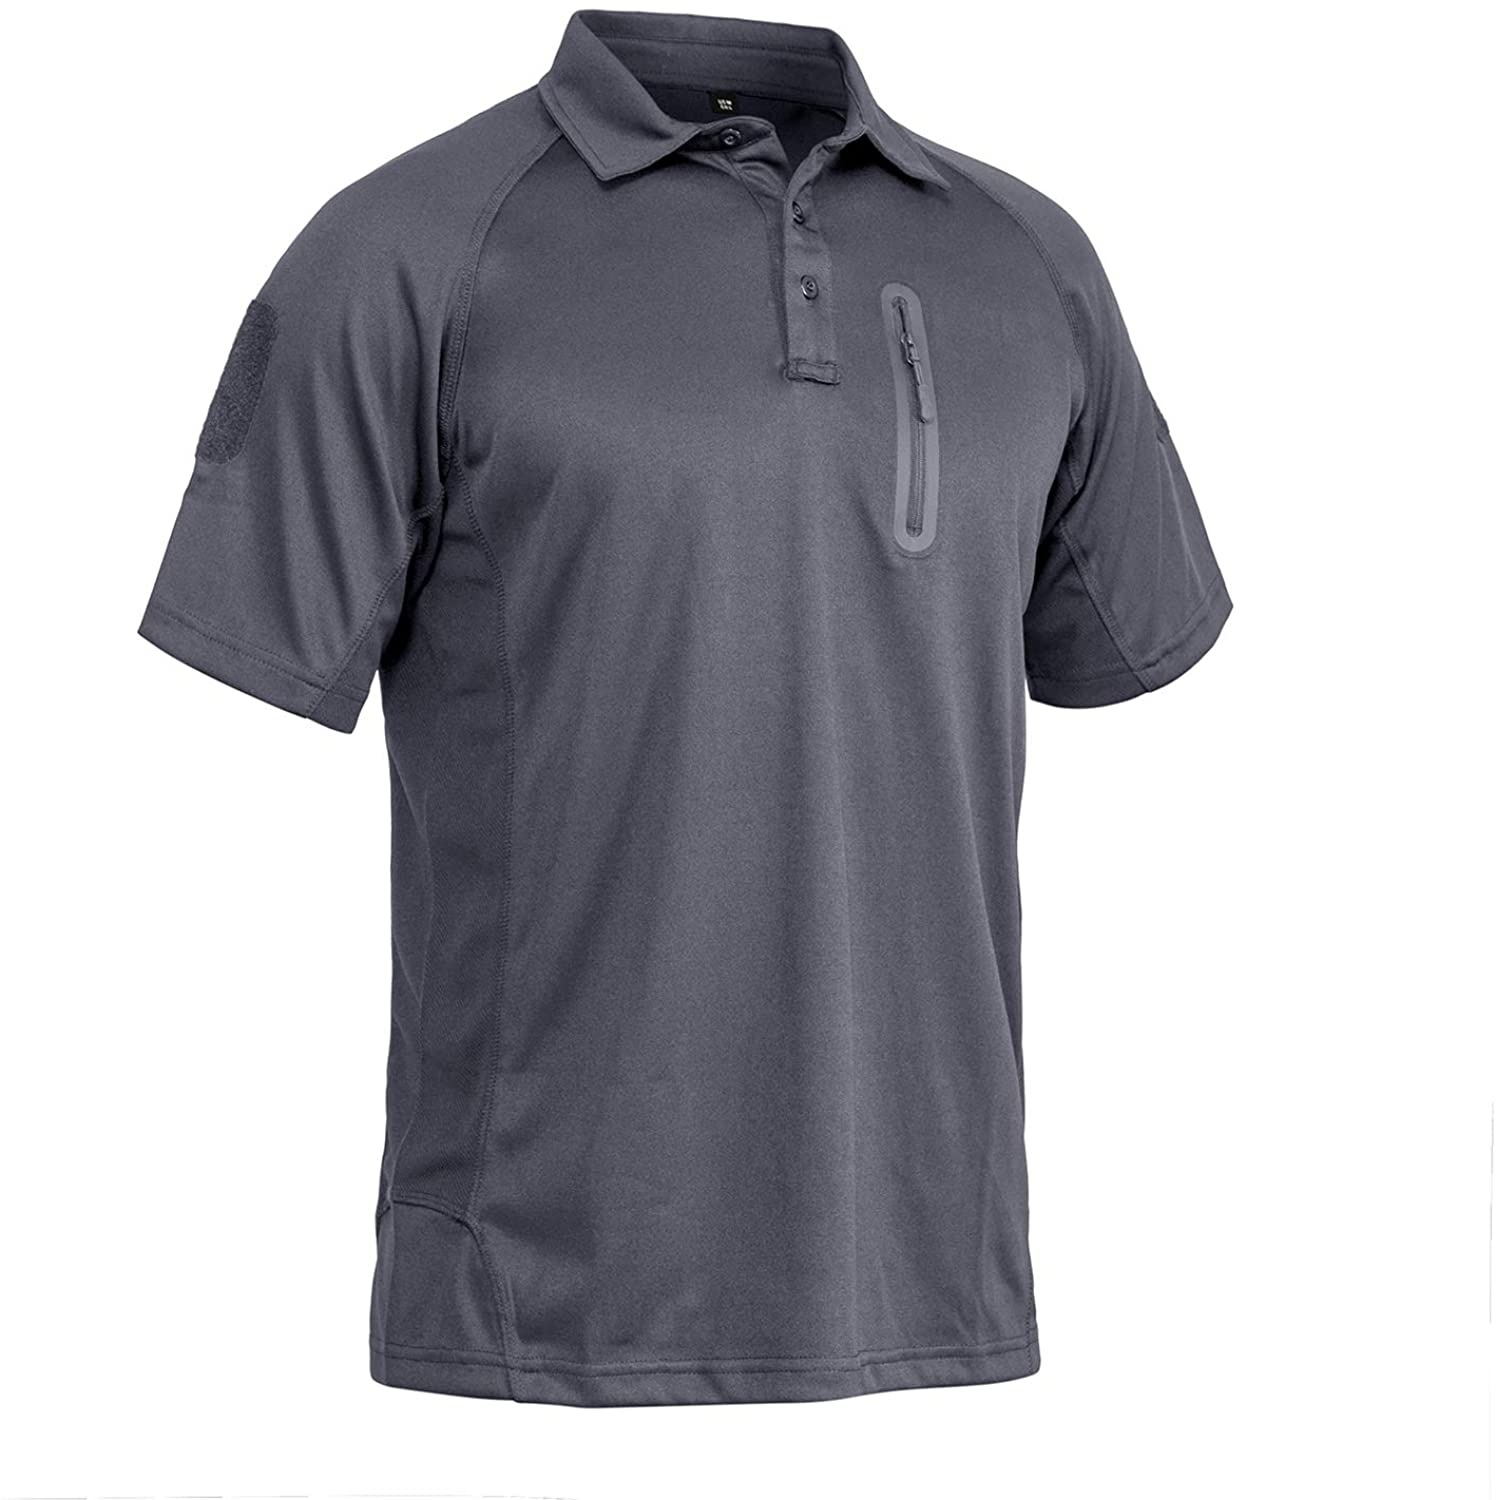 MAGNIVIT Men's Tactical Short and Long Sleeve Polo Shirts Outdoor Performance Military Cargo T-Shirts